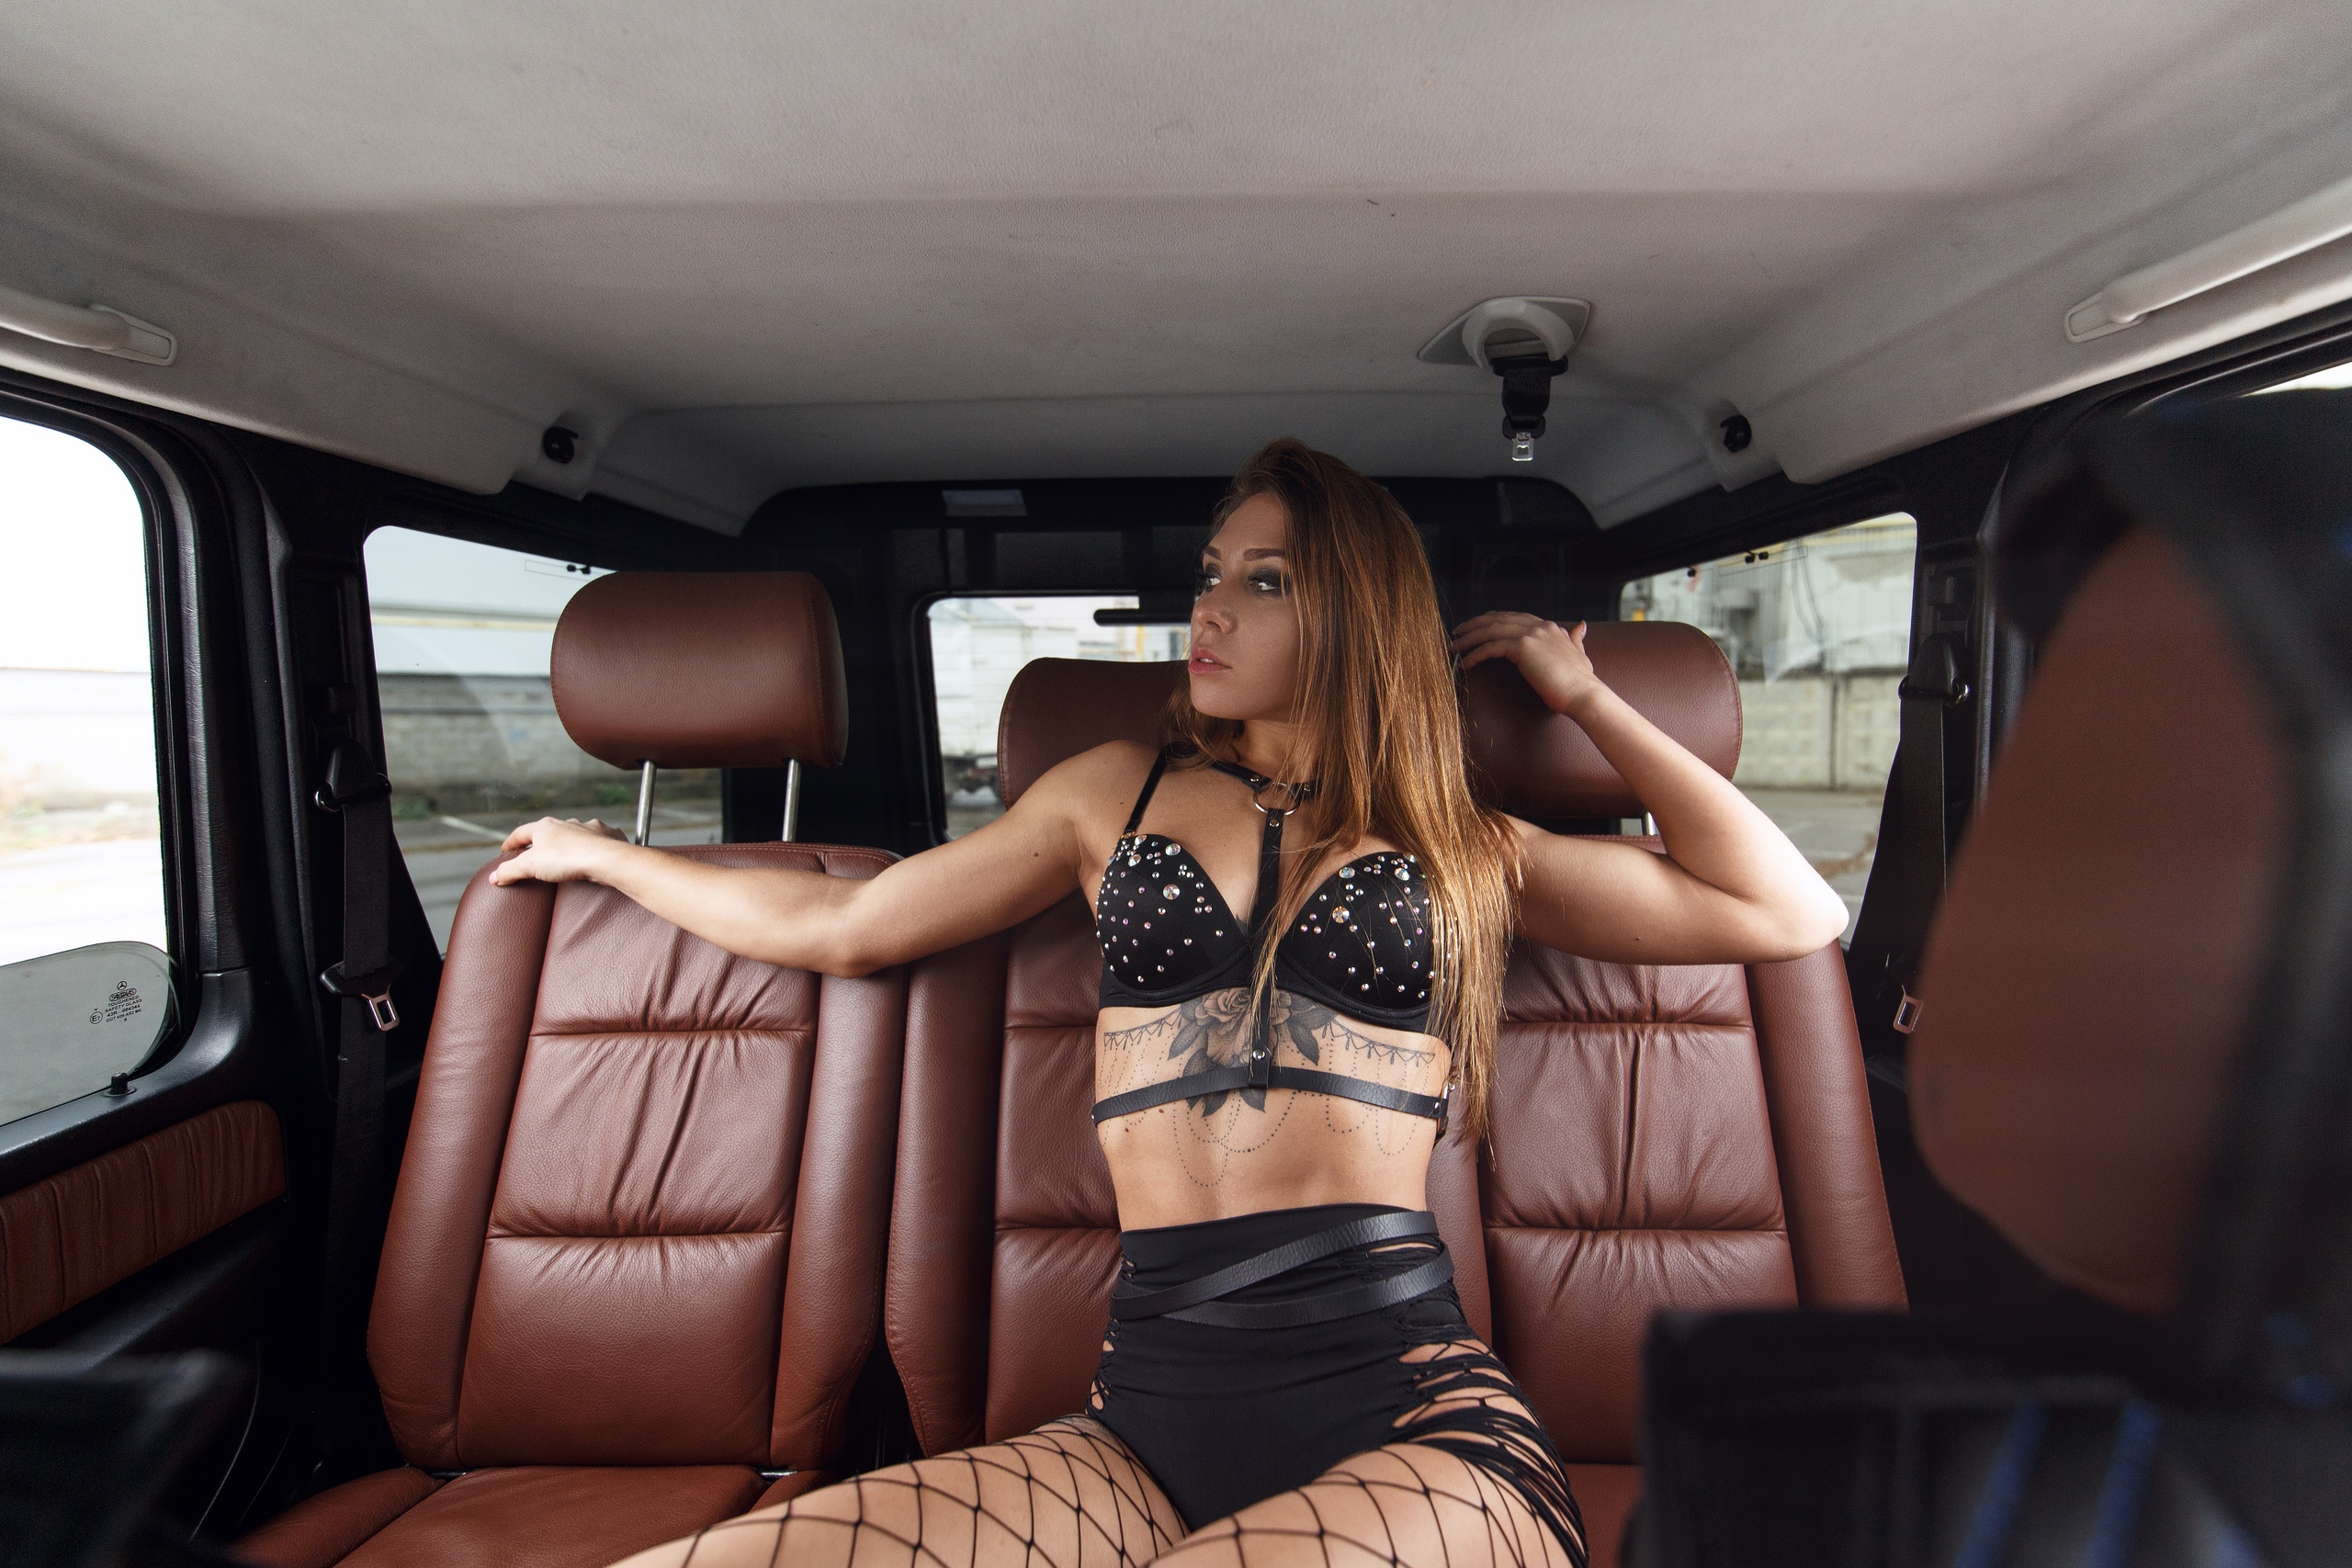 People 2560x1707 women model brunette inside a car car interior sitting lingerie black lingerie bra hiphuggers ripped clothing fishnet pantyhose looking away Sergey Sorokin